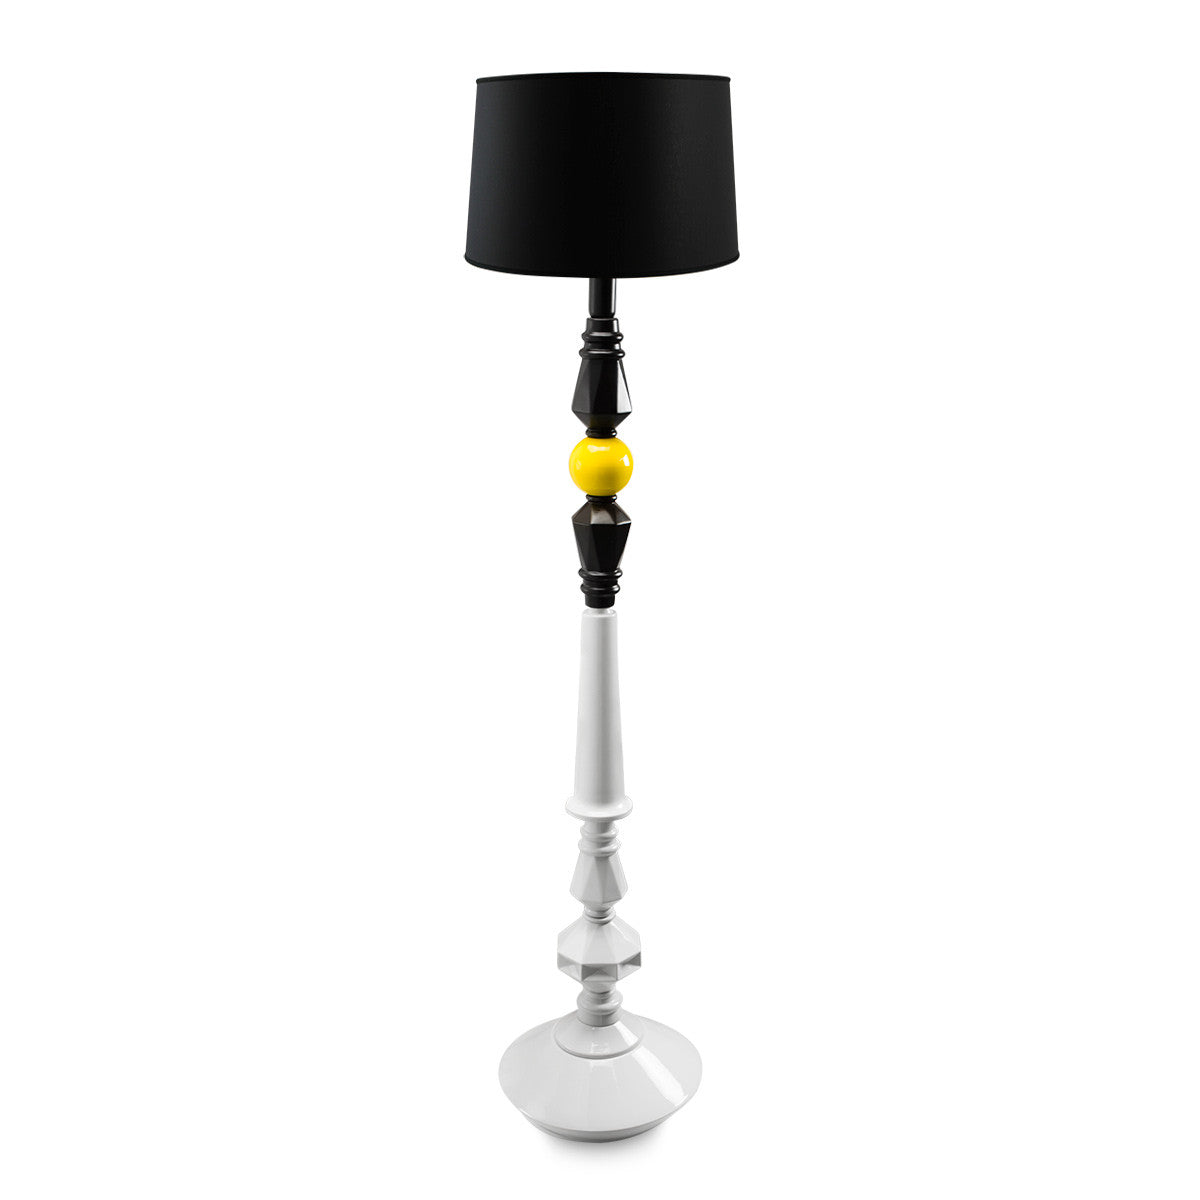 Mid century modern floor lamp finish with yellow and black color